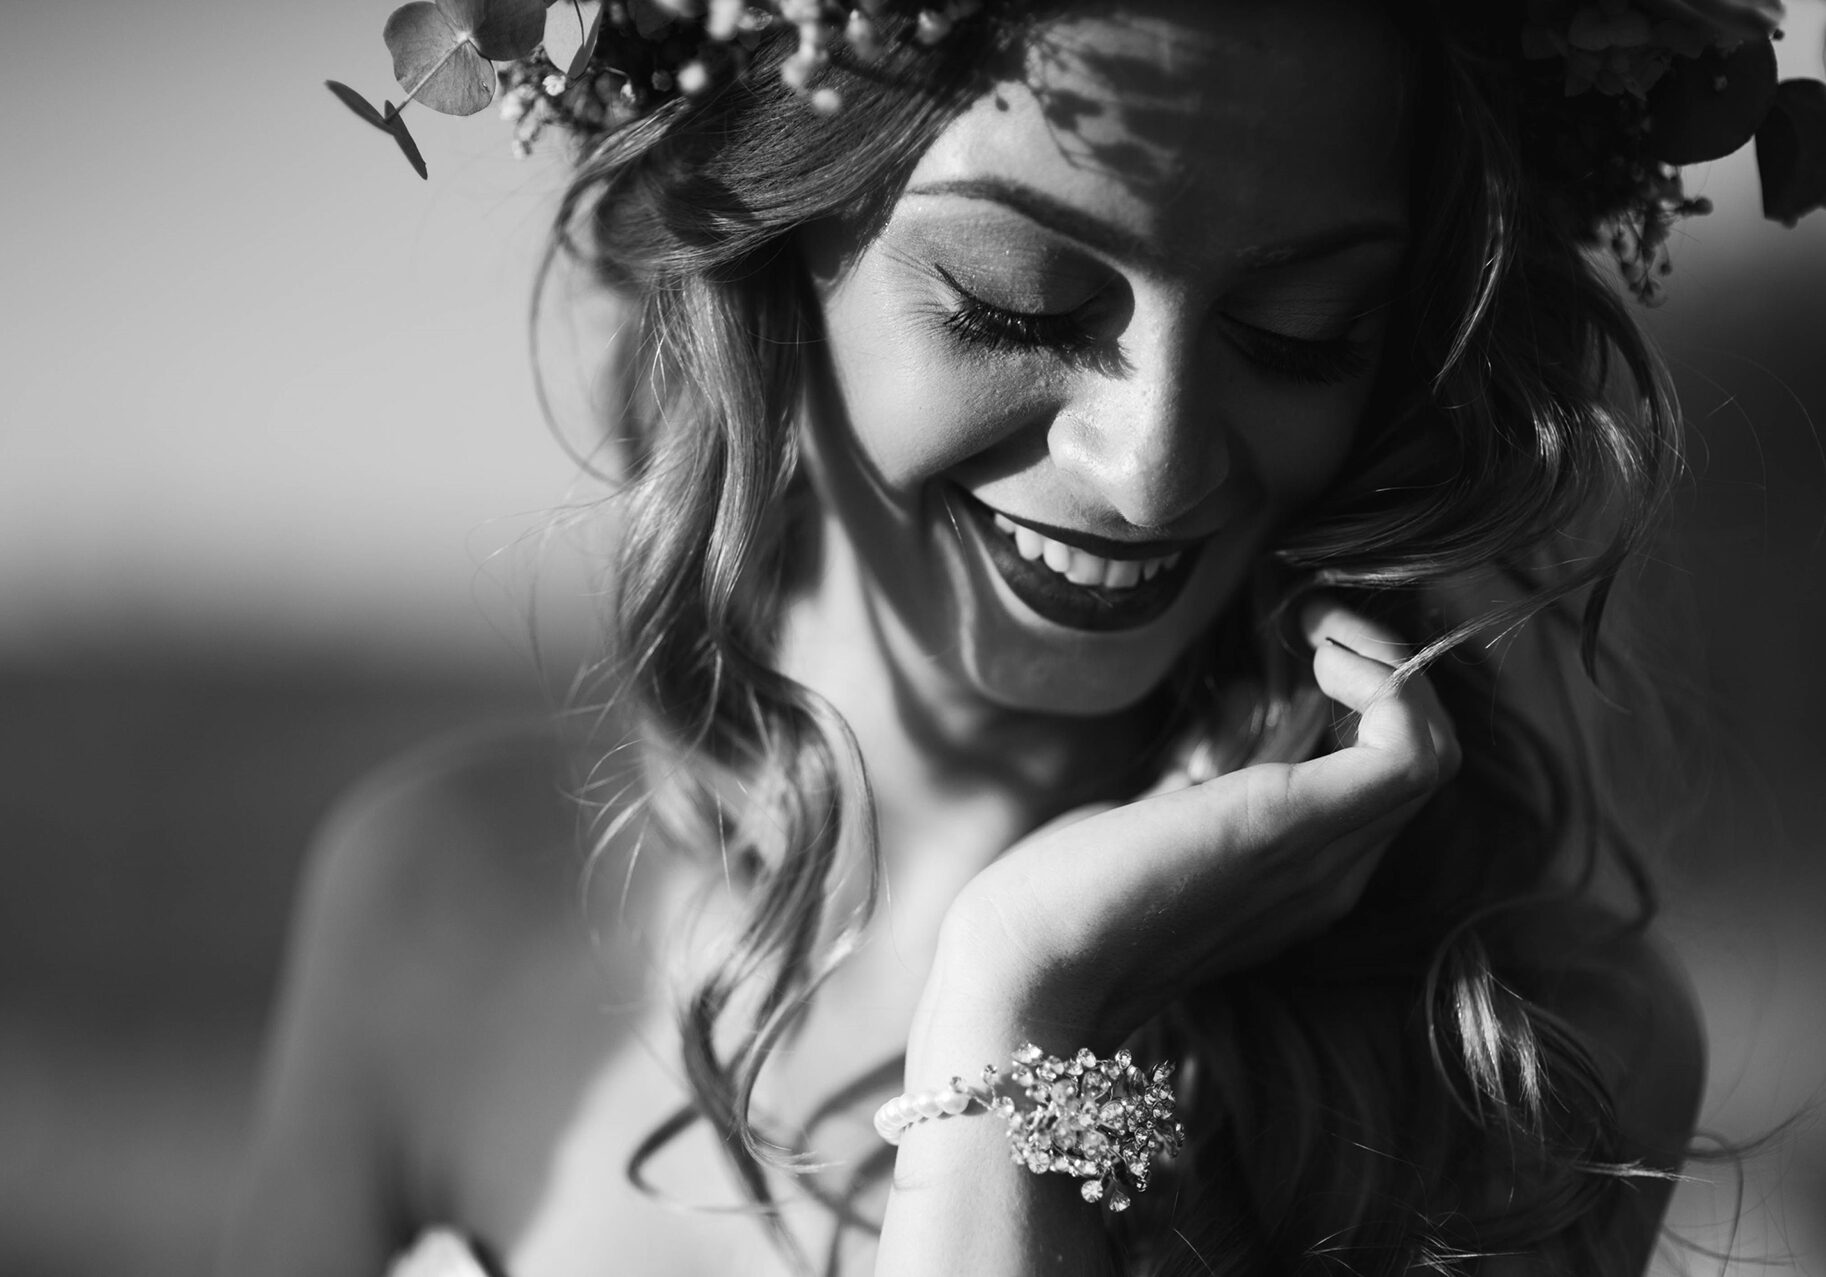 wedding, flower decorations in the hair of the bride